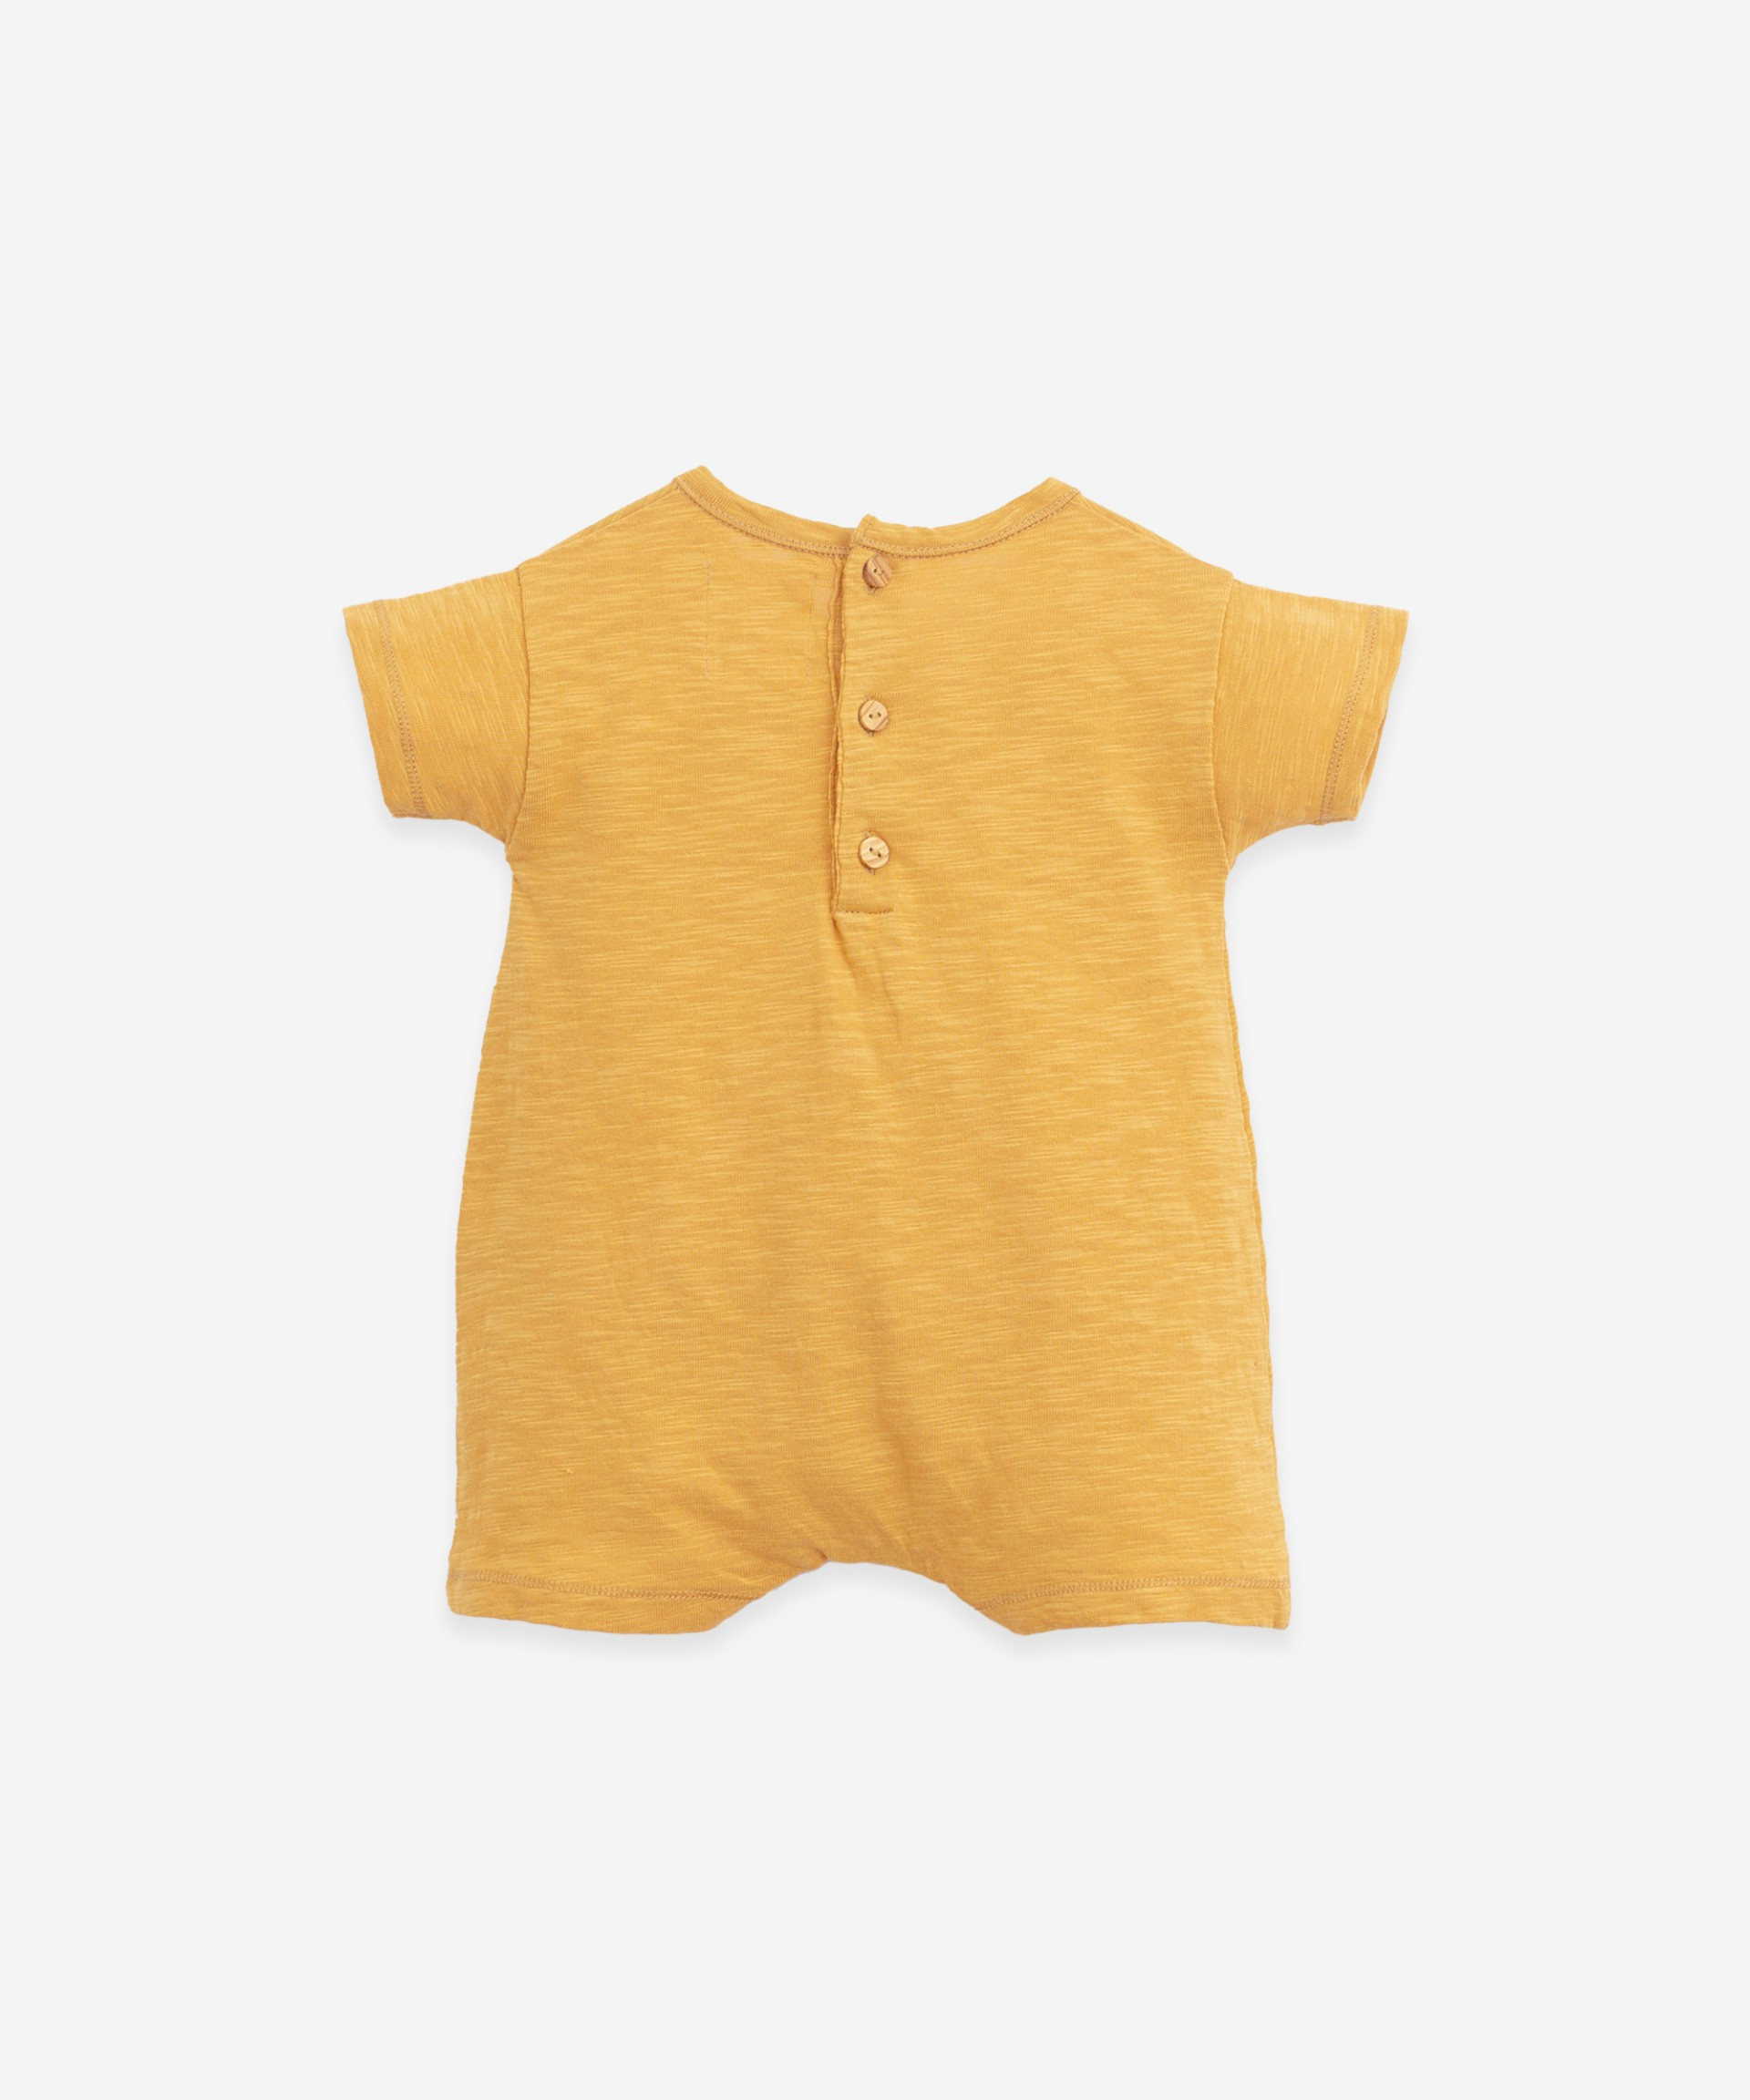 Knitted jumpsuit with pocket | Botany